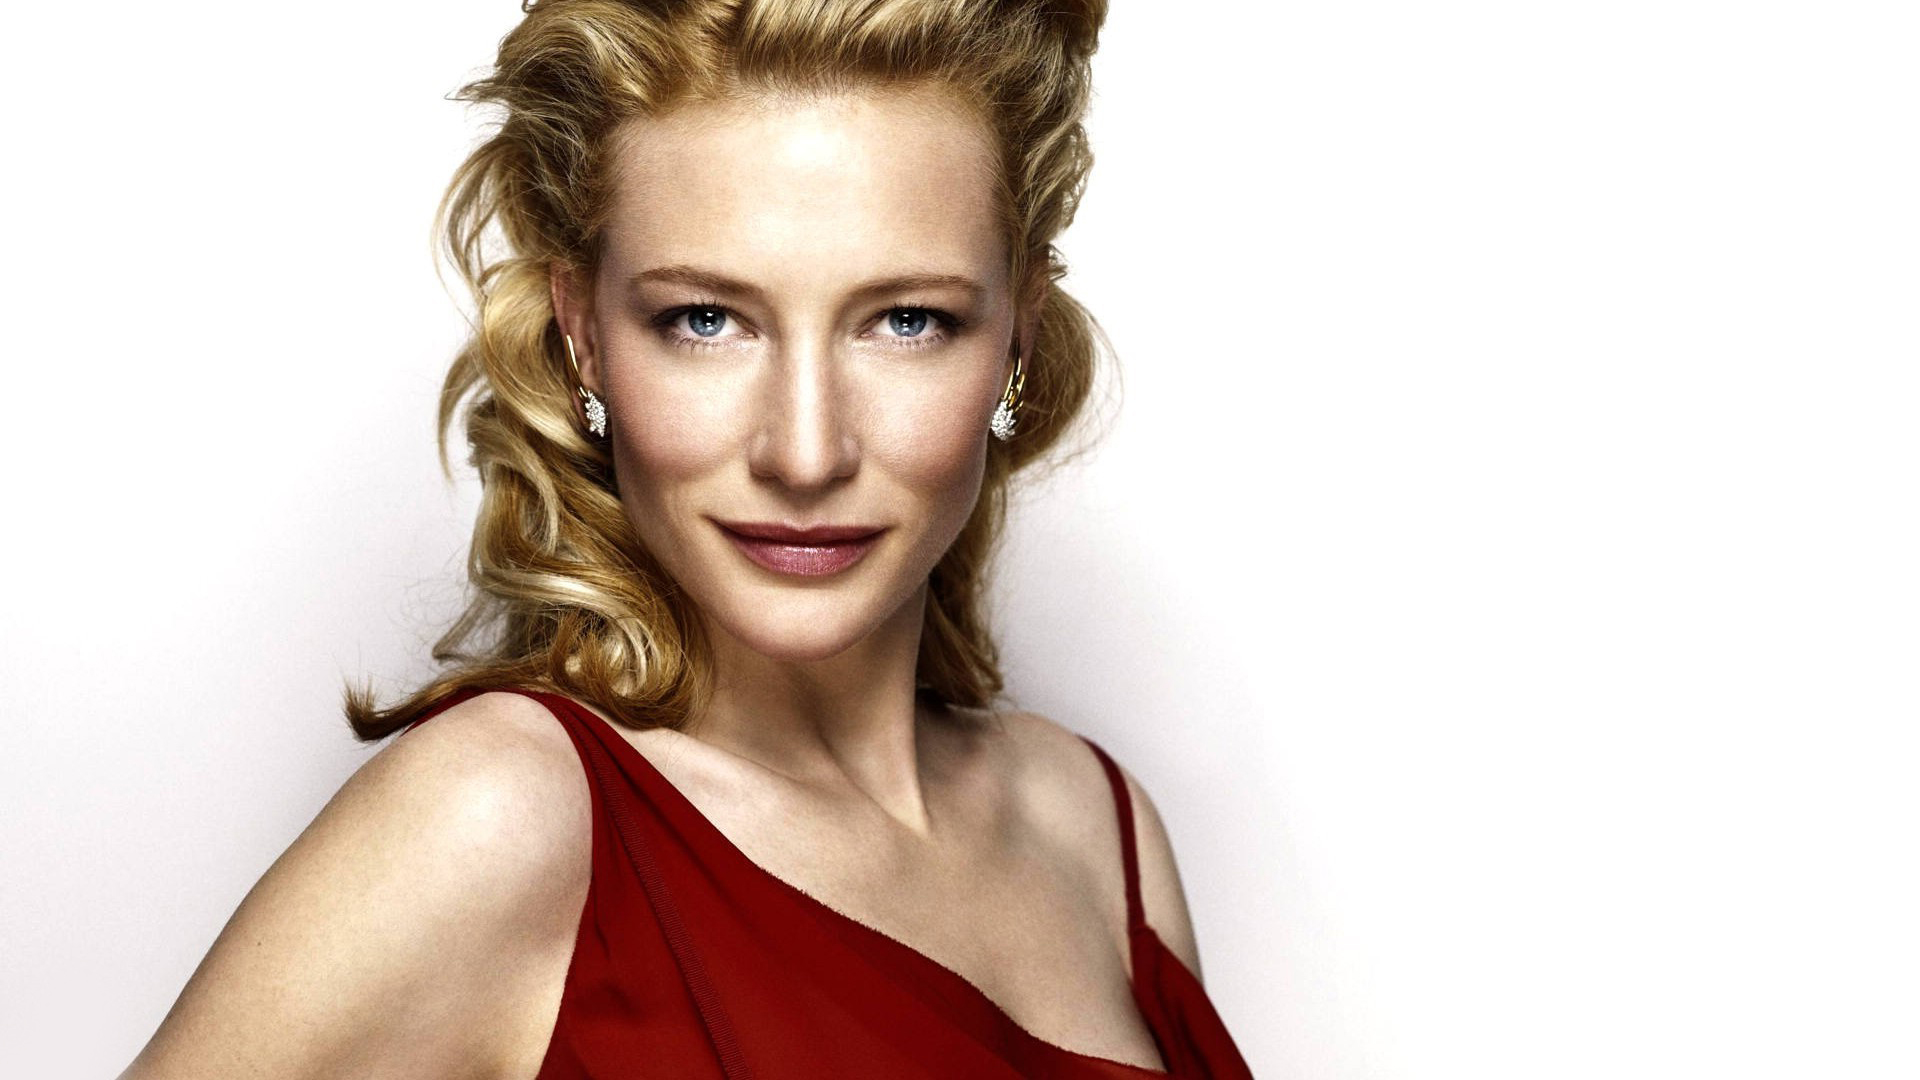 Cate Blanchett red dress hd wallpaper Wallpaper